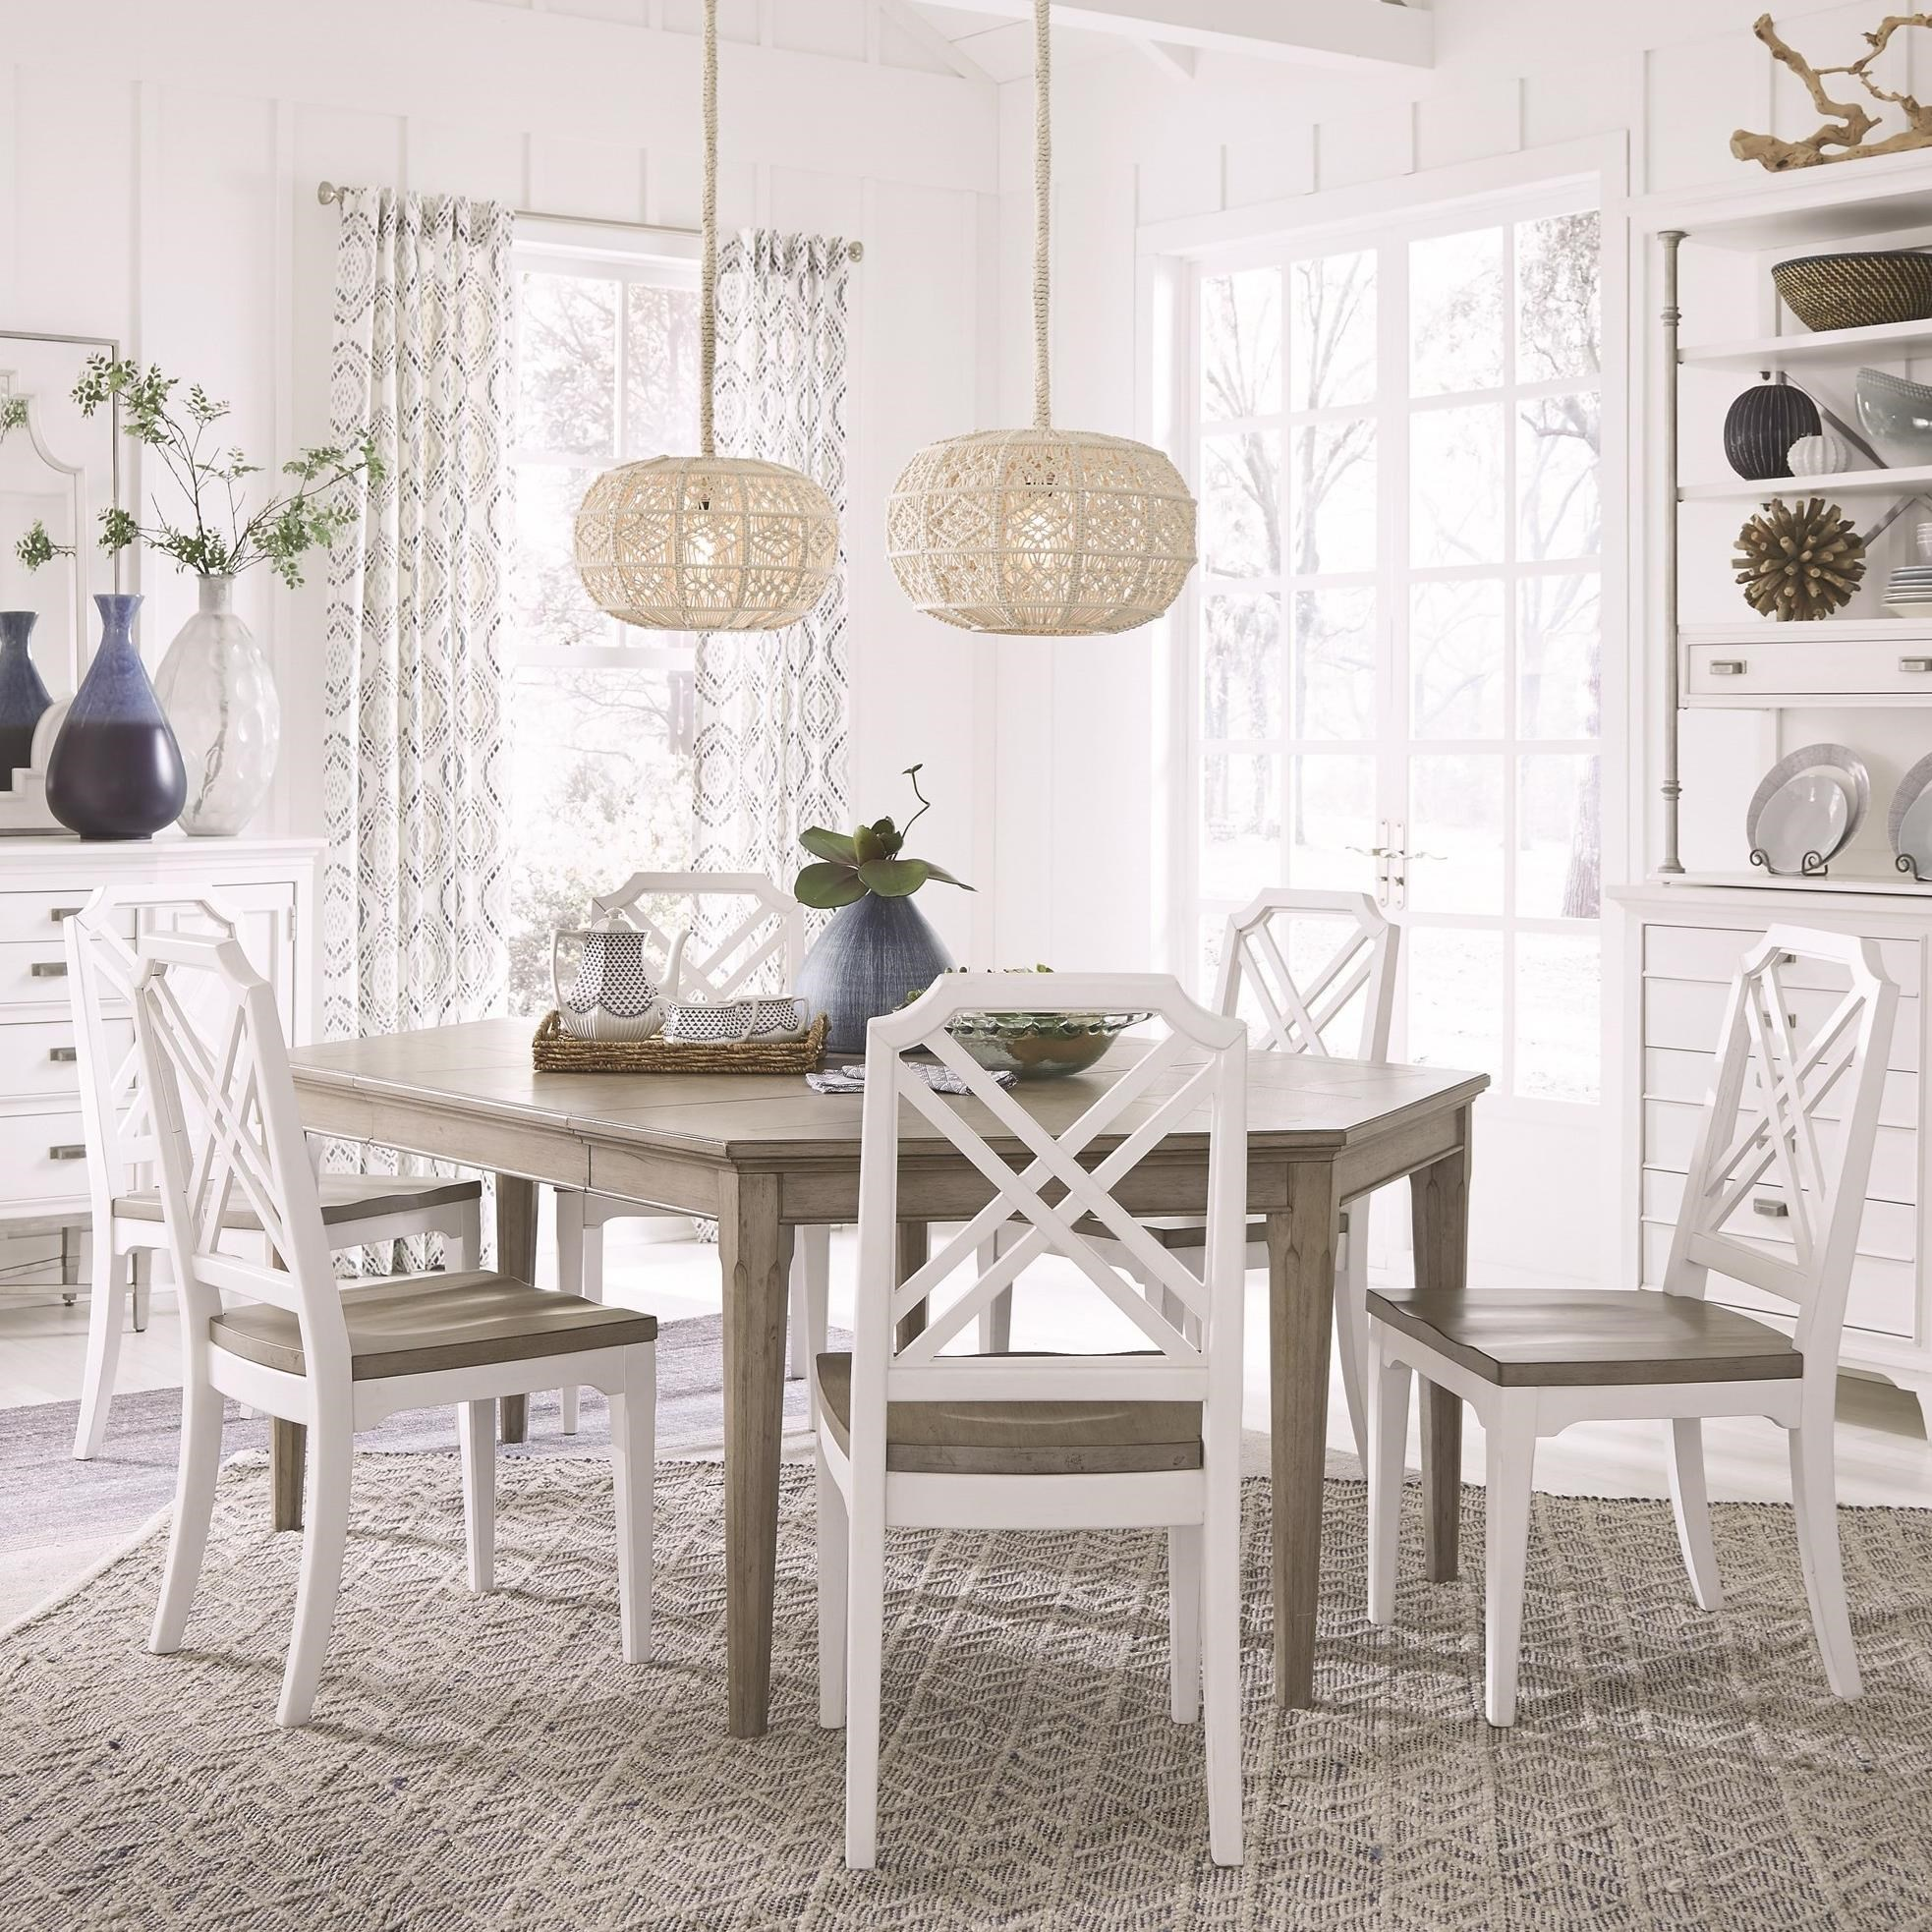 Dining Table Set with 6 Chairs